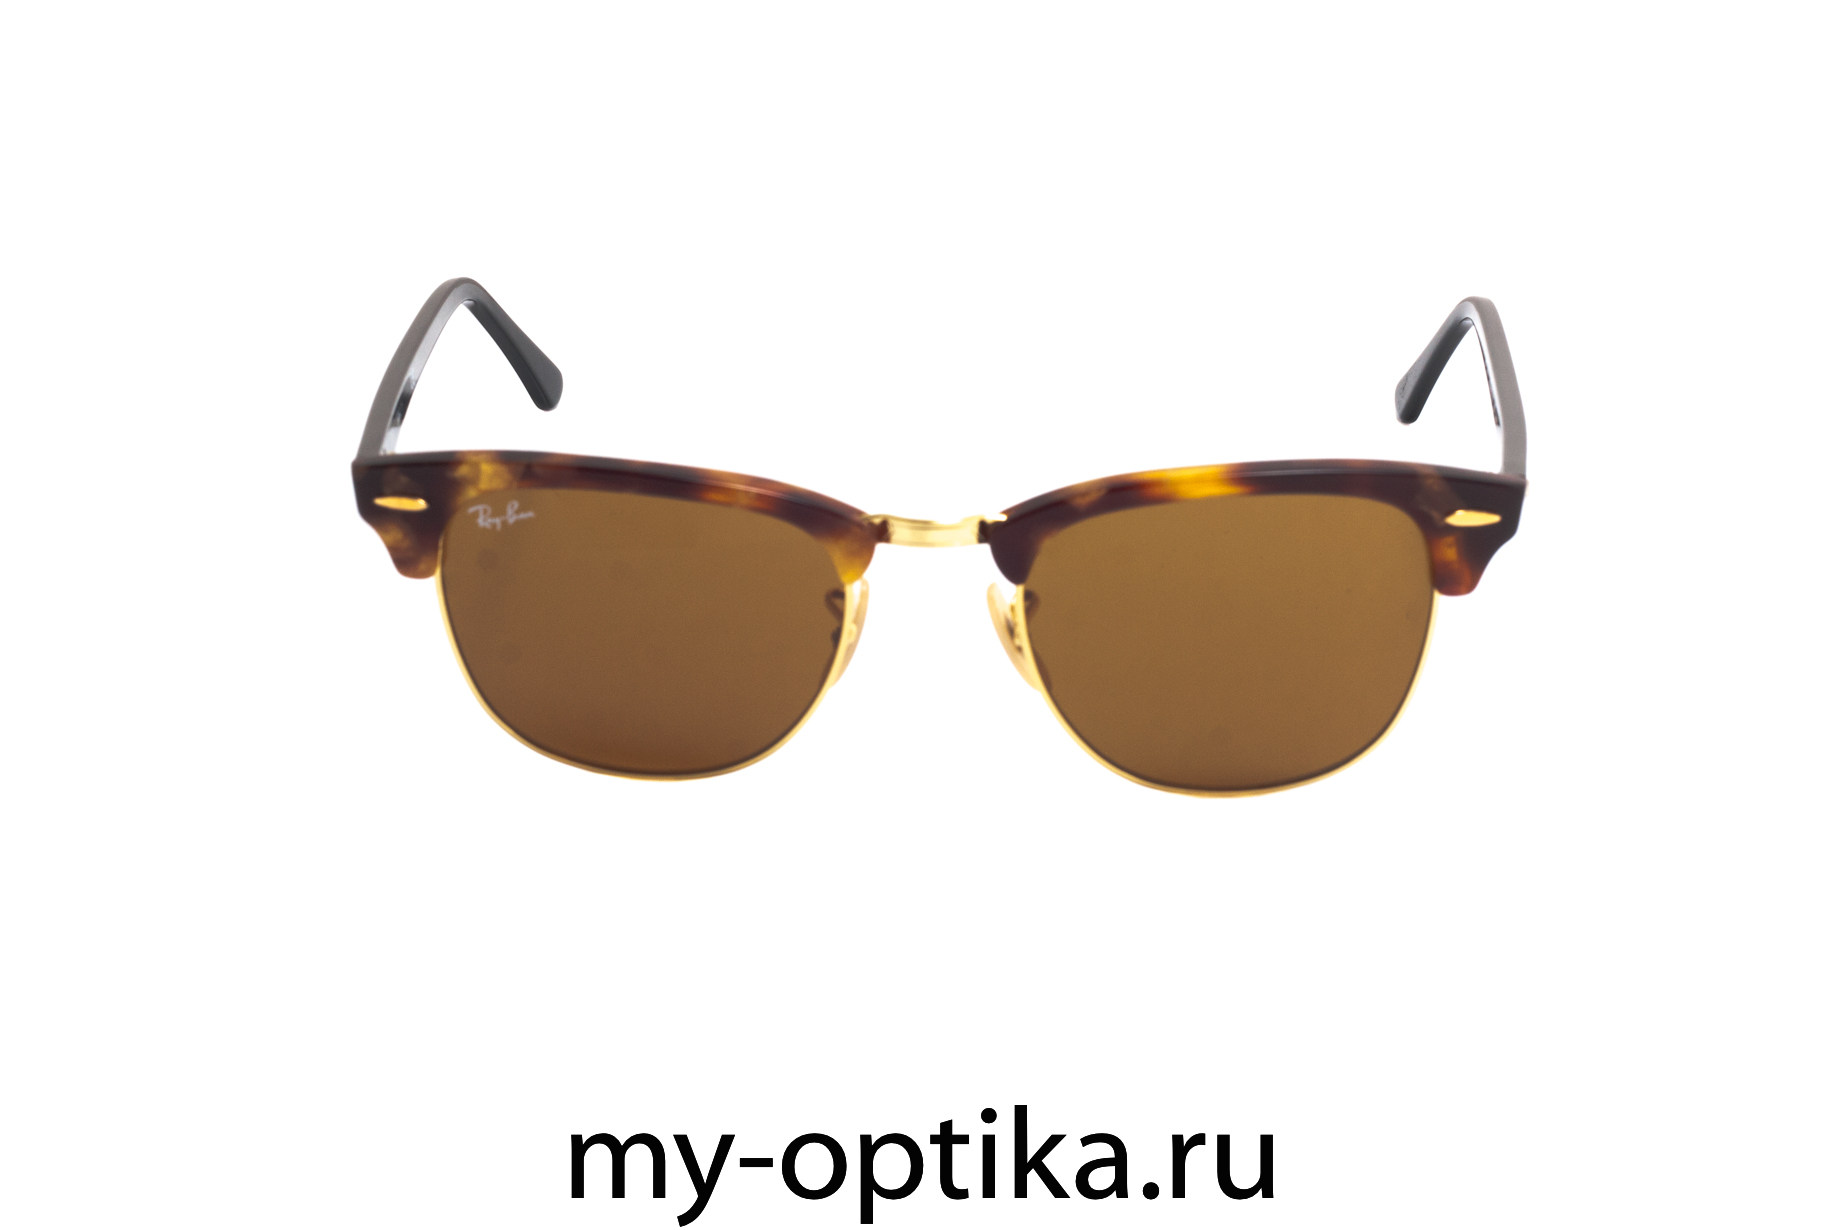 Ray-Ban 3016 Clubmaster 1160